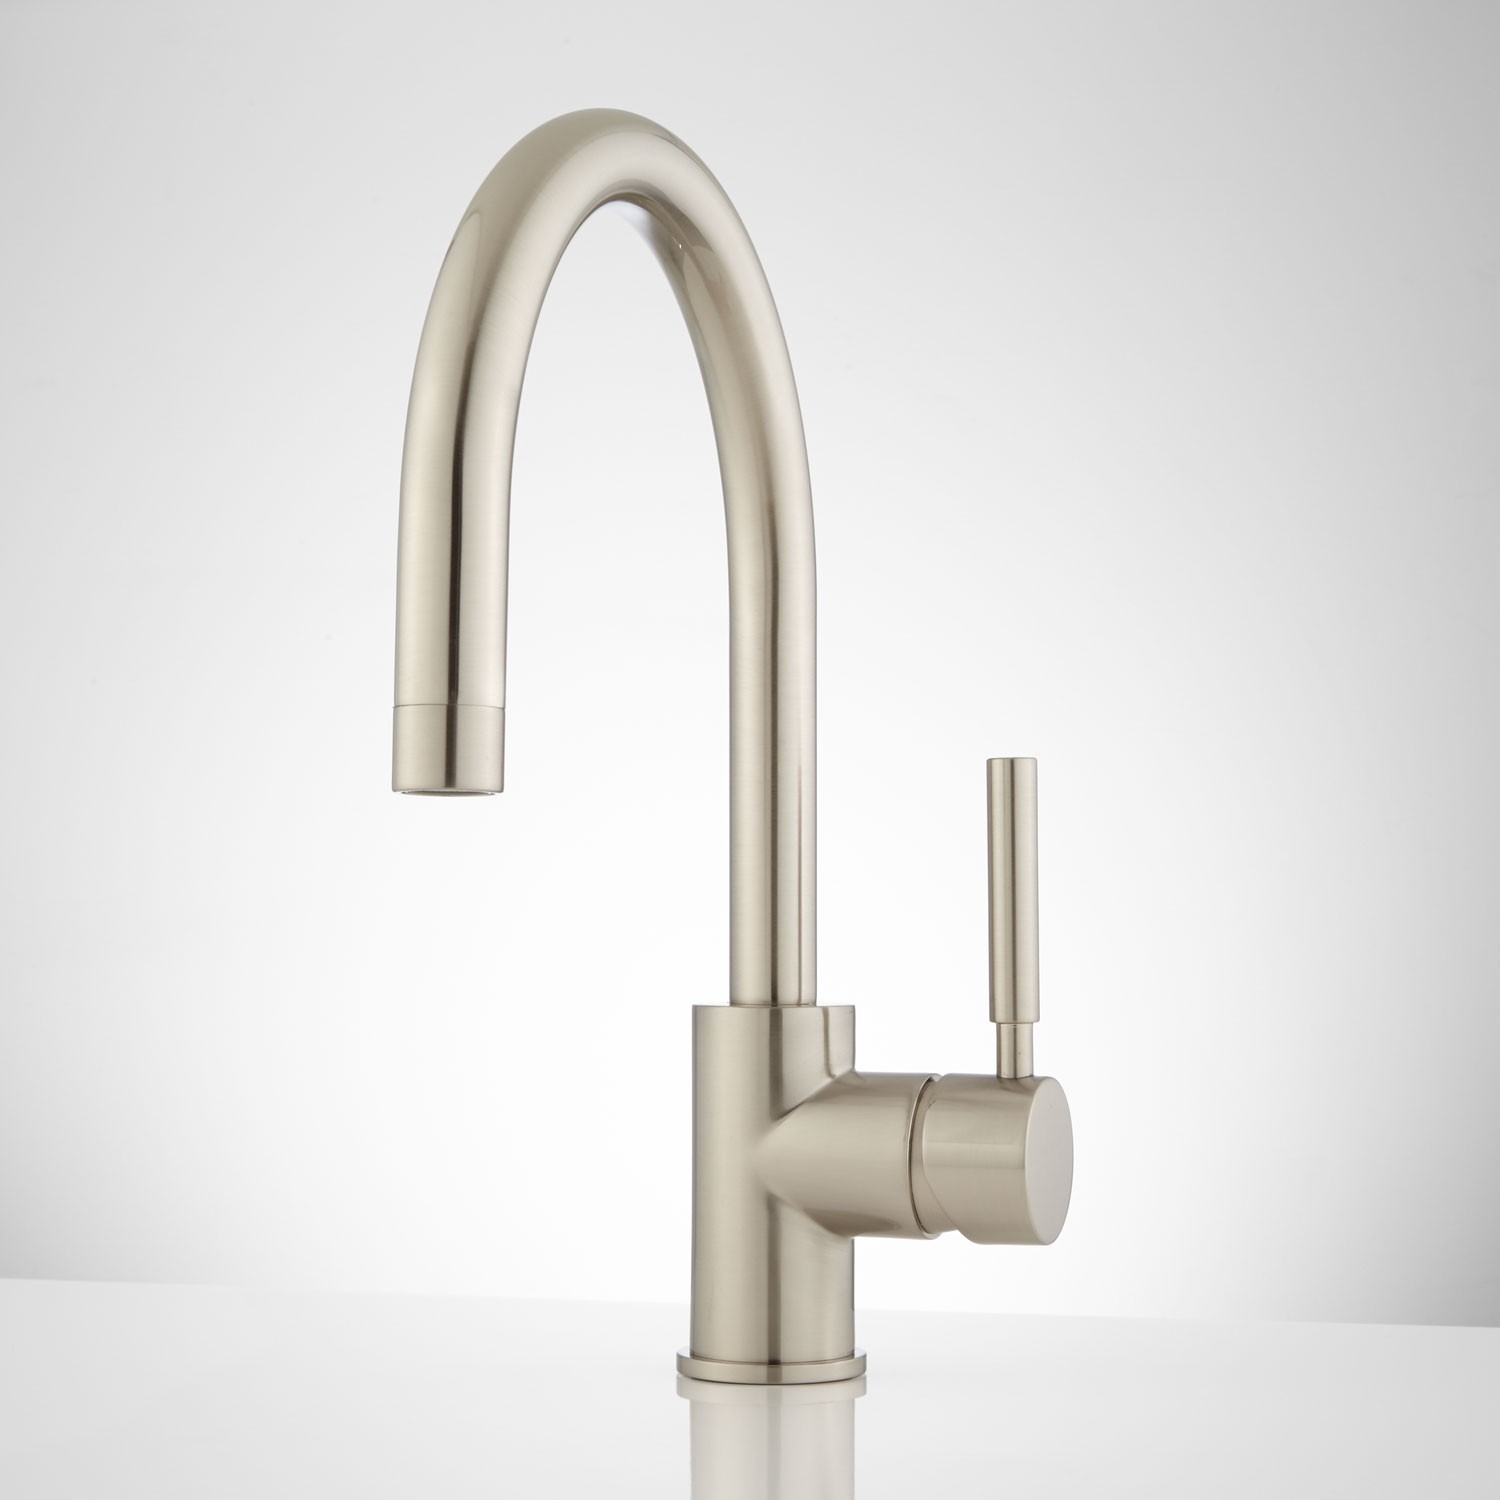 Ideas, casimir single hole bathroom faucet with pop up drain single with regard to proportions 1500 x 1500  .